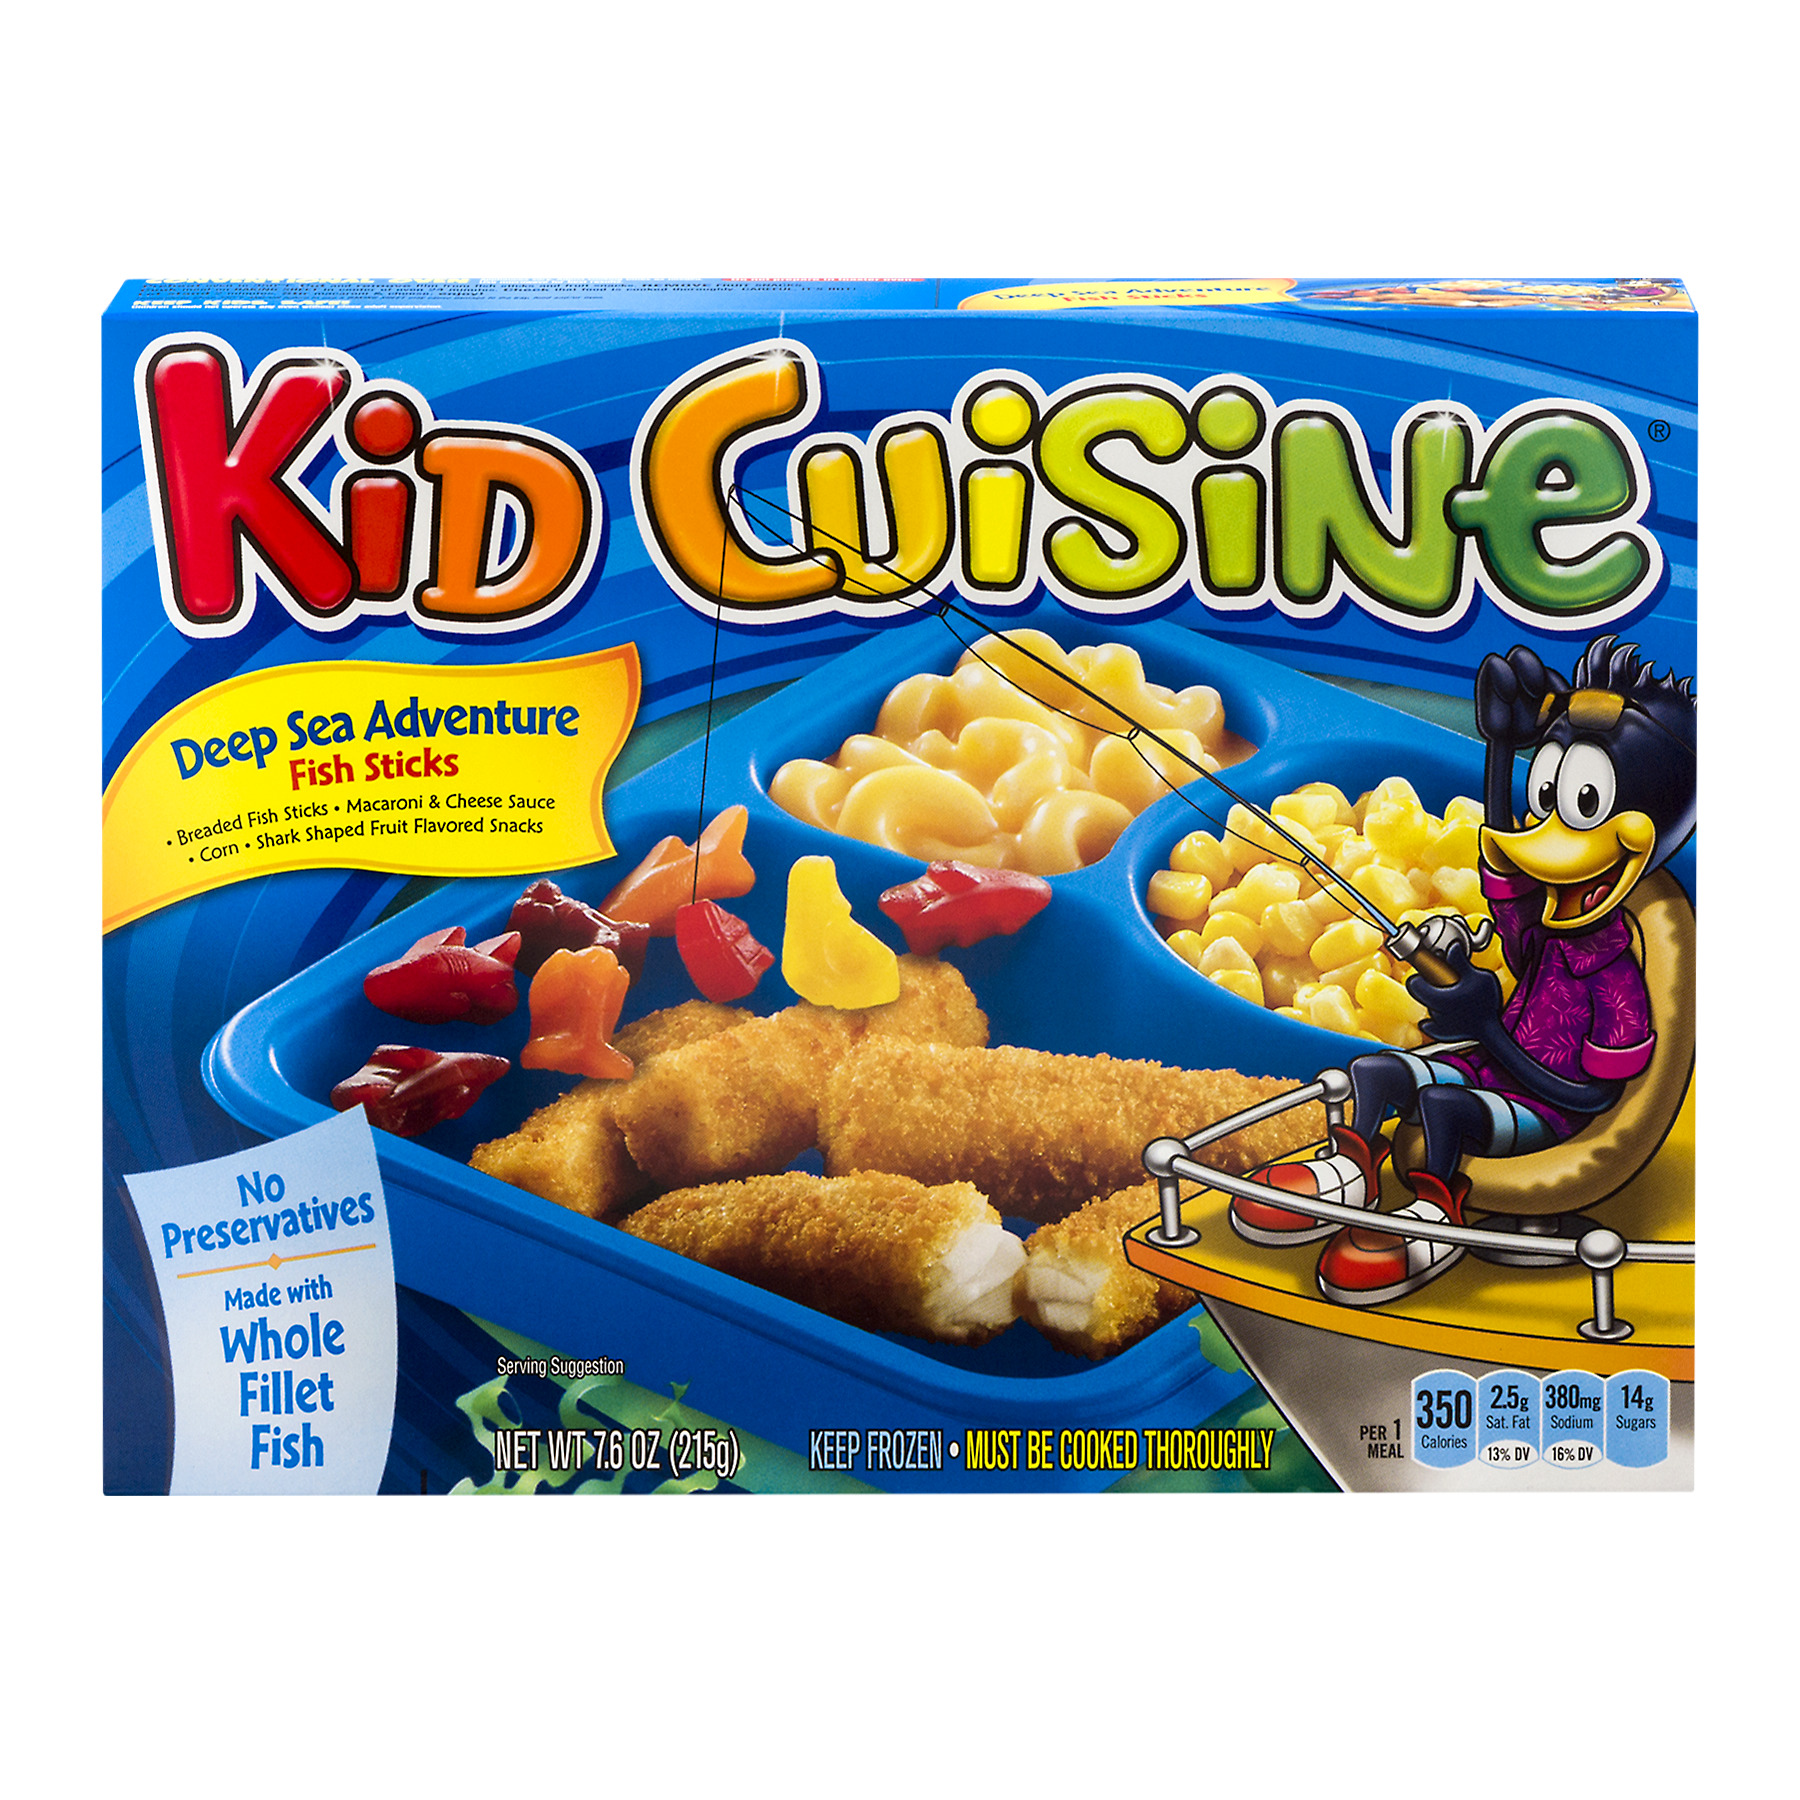 Kid Cuisine Deep Sea Adventure Fish Sticks Frozen Dinner 7 6 Oz Box